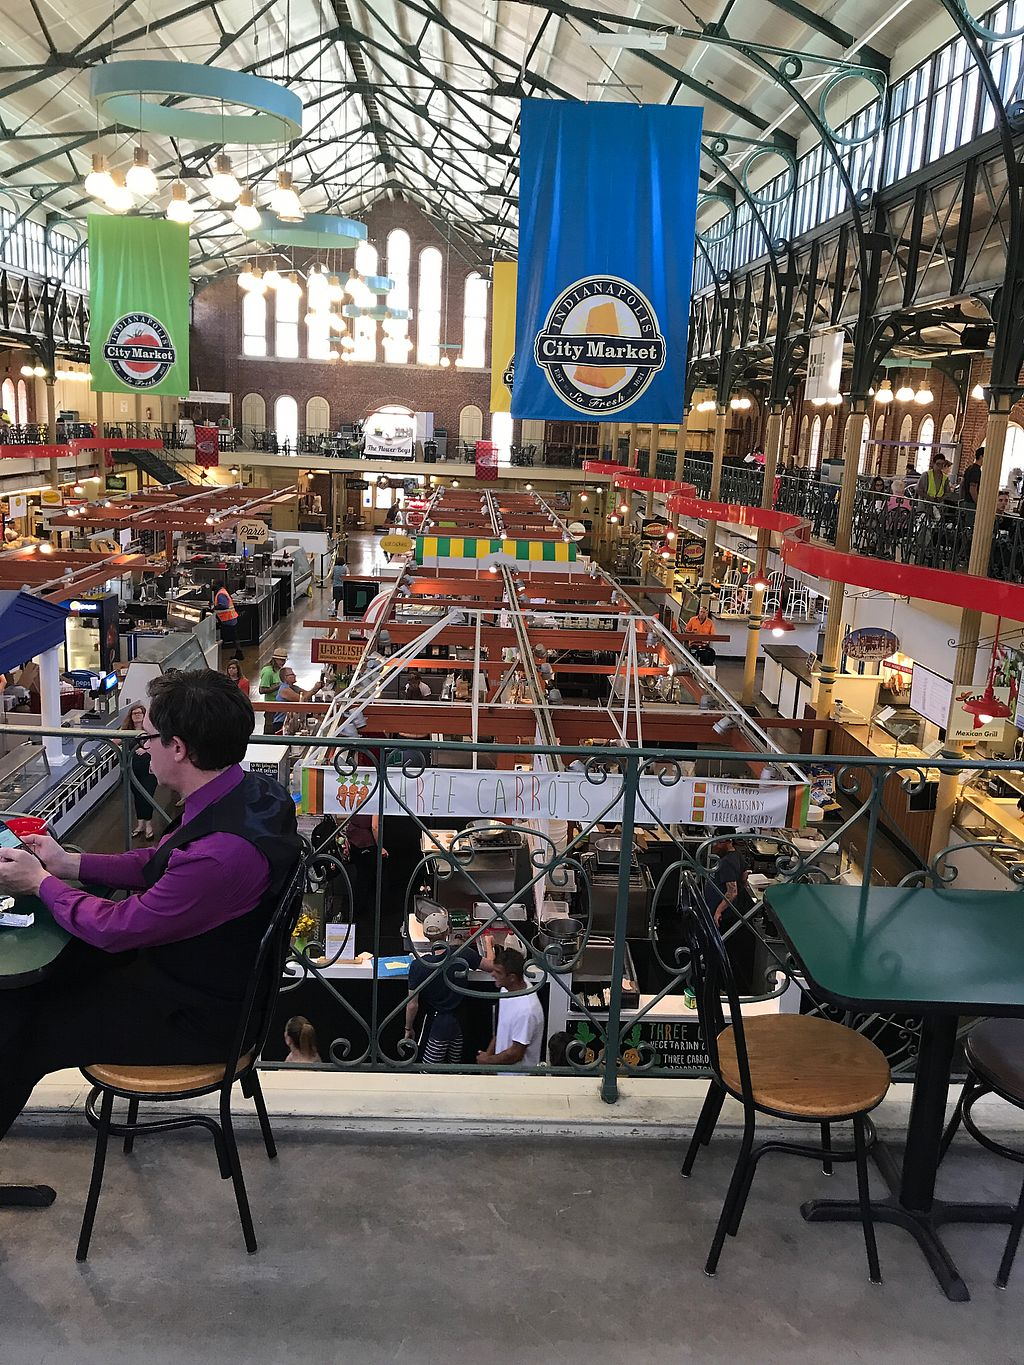 """Photo of Three Carrots - City Market  by <a href=""""/members/profile/LucyBolden"""">LucyBolden</a> <br/>The Market from seating area <br/> July 26, 2017  - <a href='/contact/abuse/image/49037/284931'>Report</a>"""